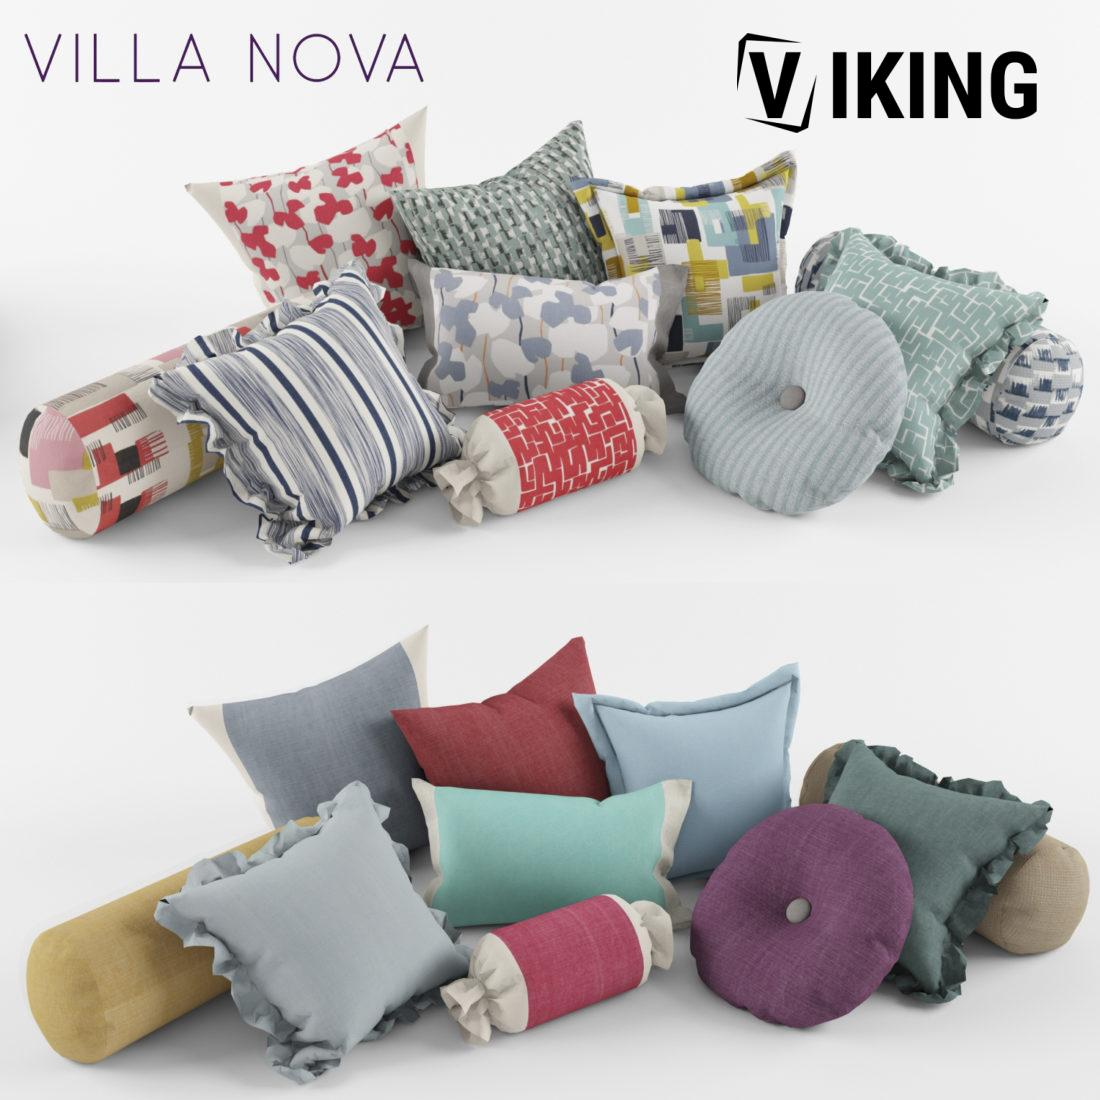 908.A set of Pillows 3dsmax File free download 1 scaled 1